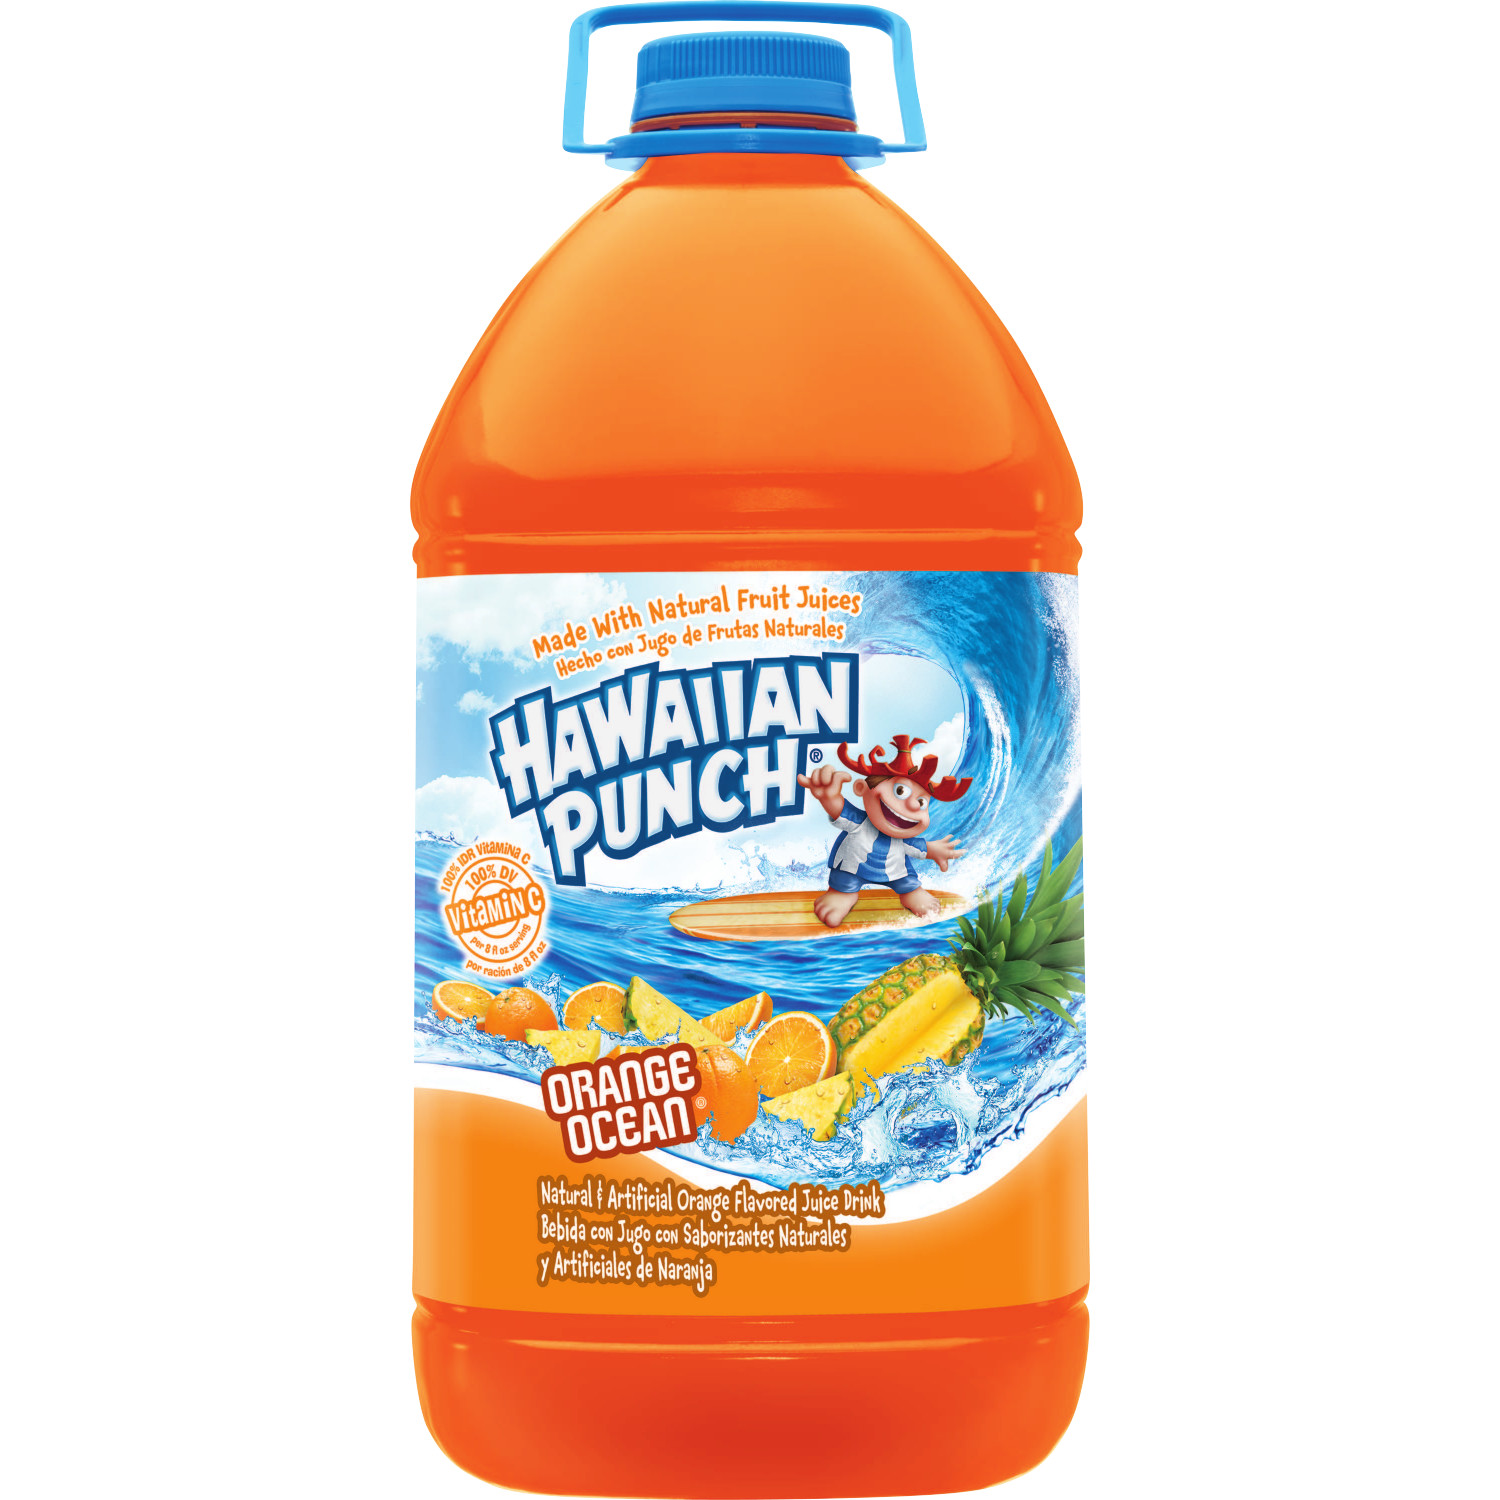 Hawaiian Punch Juice, Orange Ocean, 128 Fl Oz, 1 Count